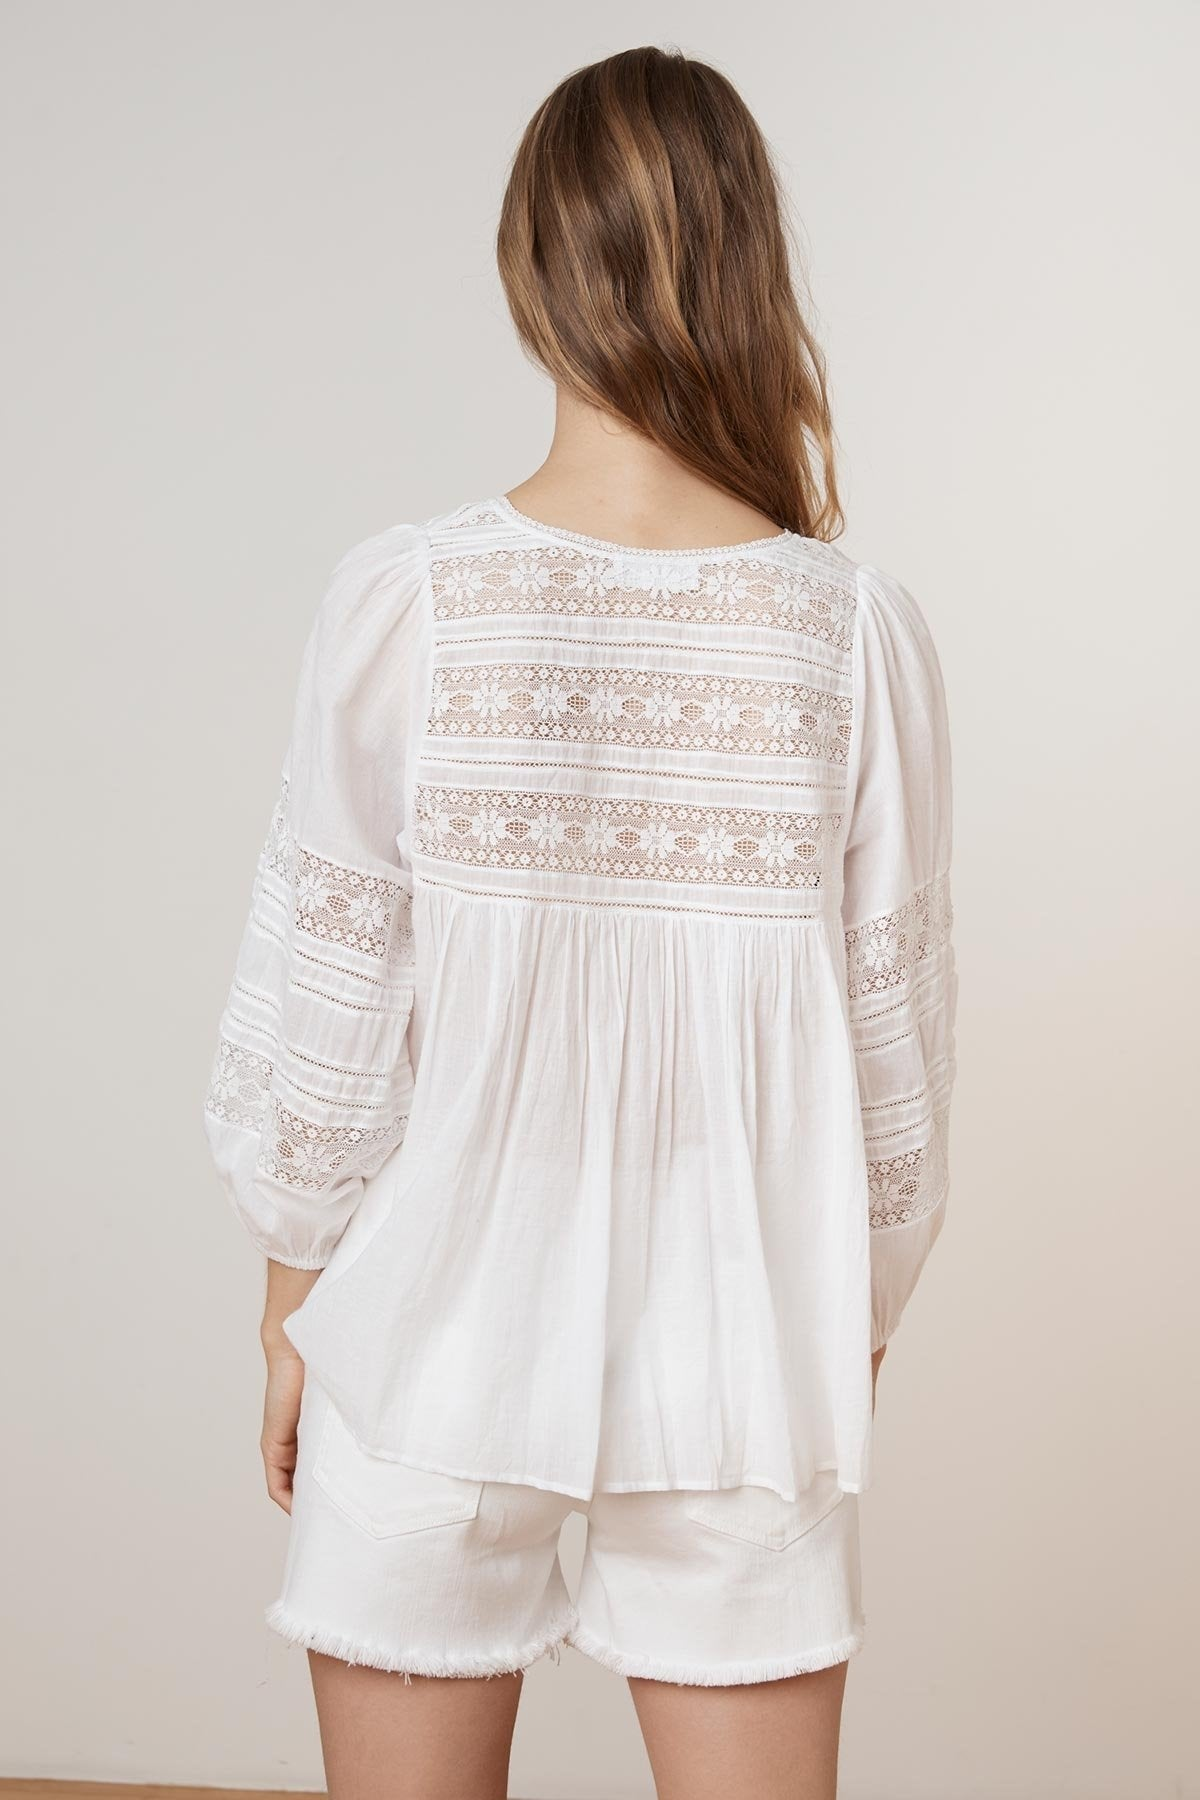 EVIE COTTON LACE PEASANT TOP